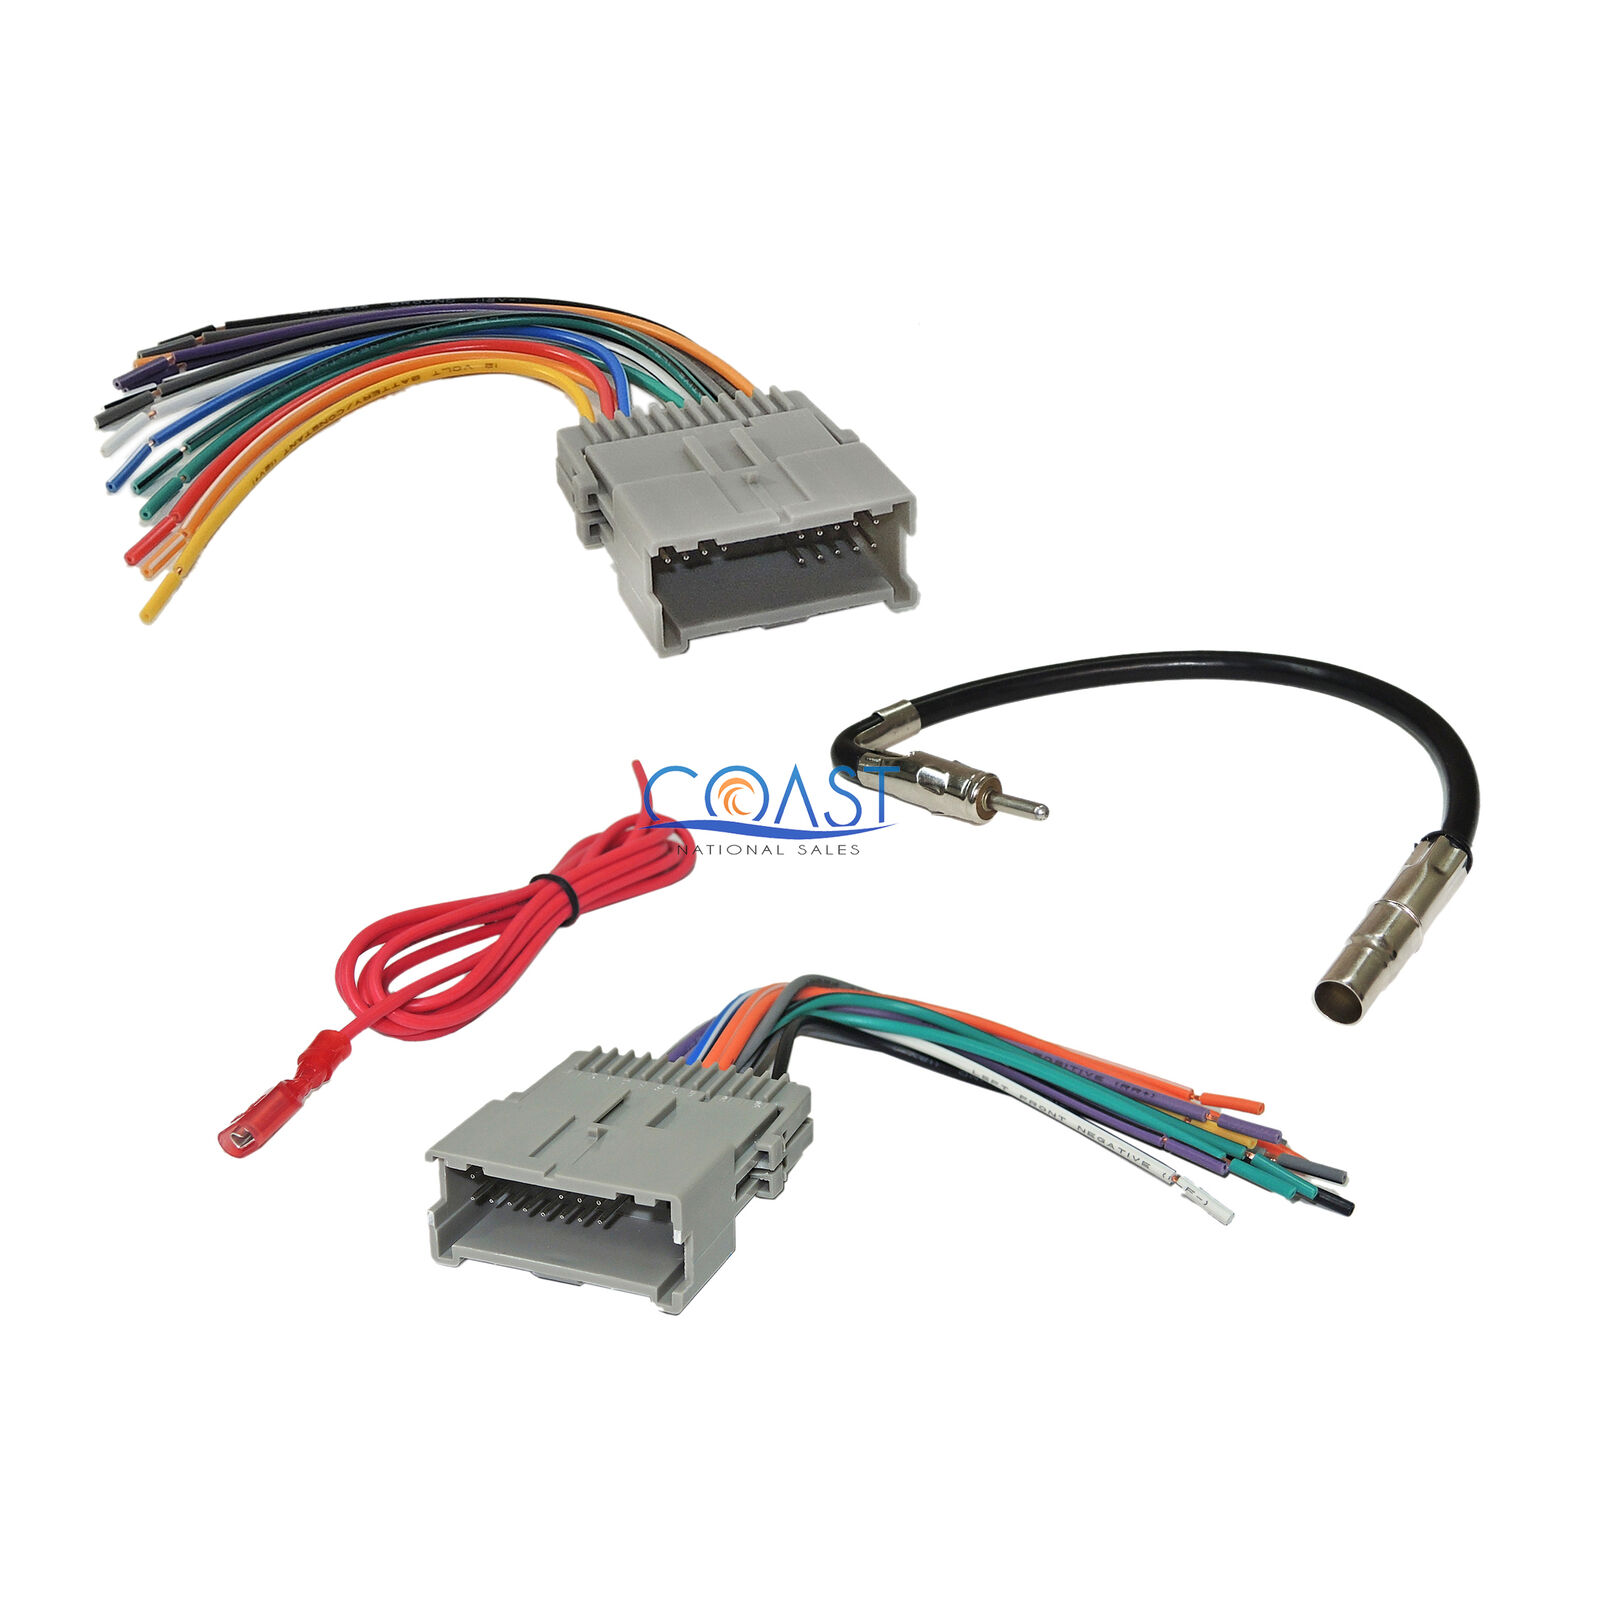 Gm Car Radio Stereo Wiring Harness Antenna Combo For 1992 Up Chevy Automobile 1 Of 4free Shipping